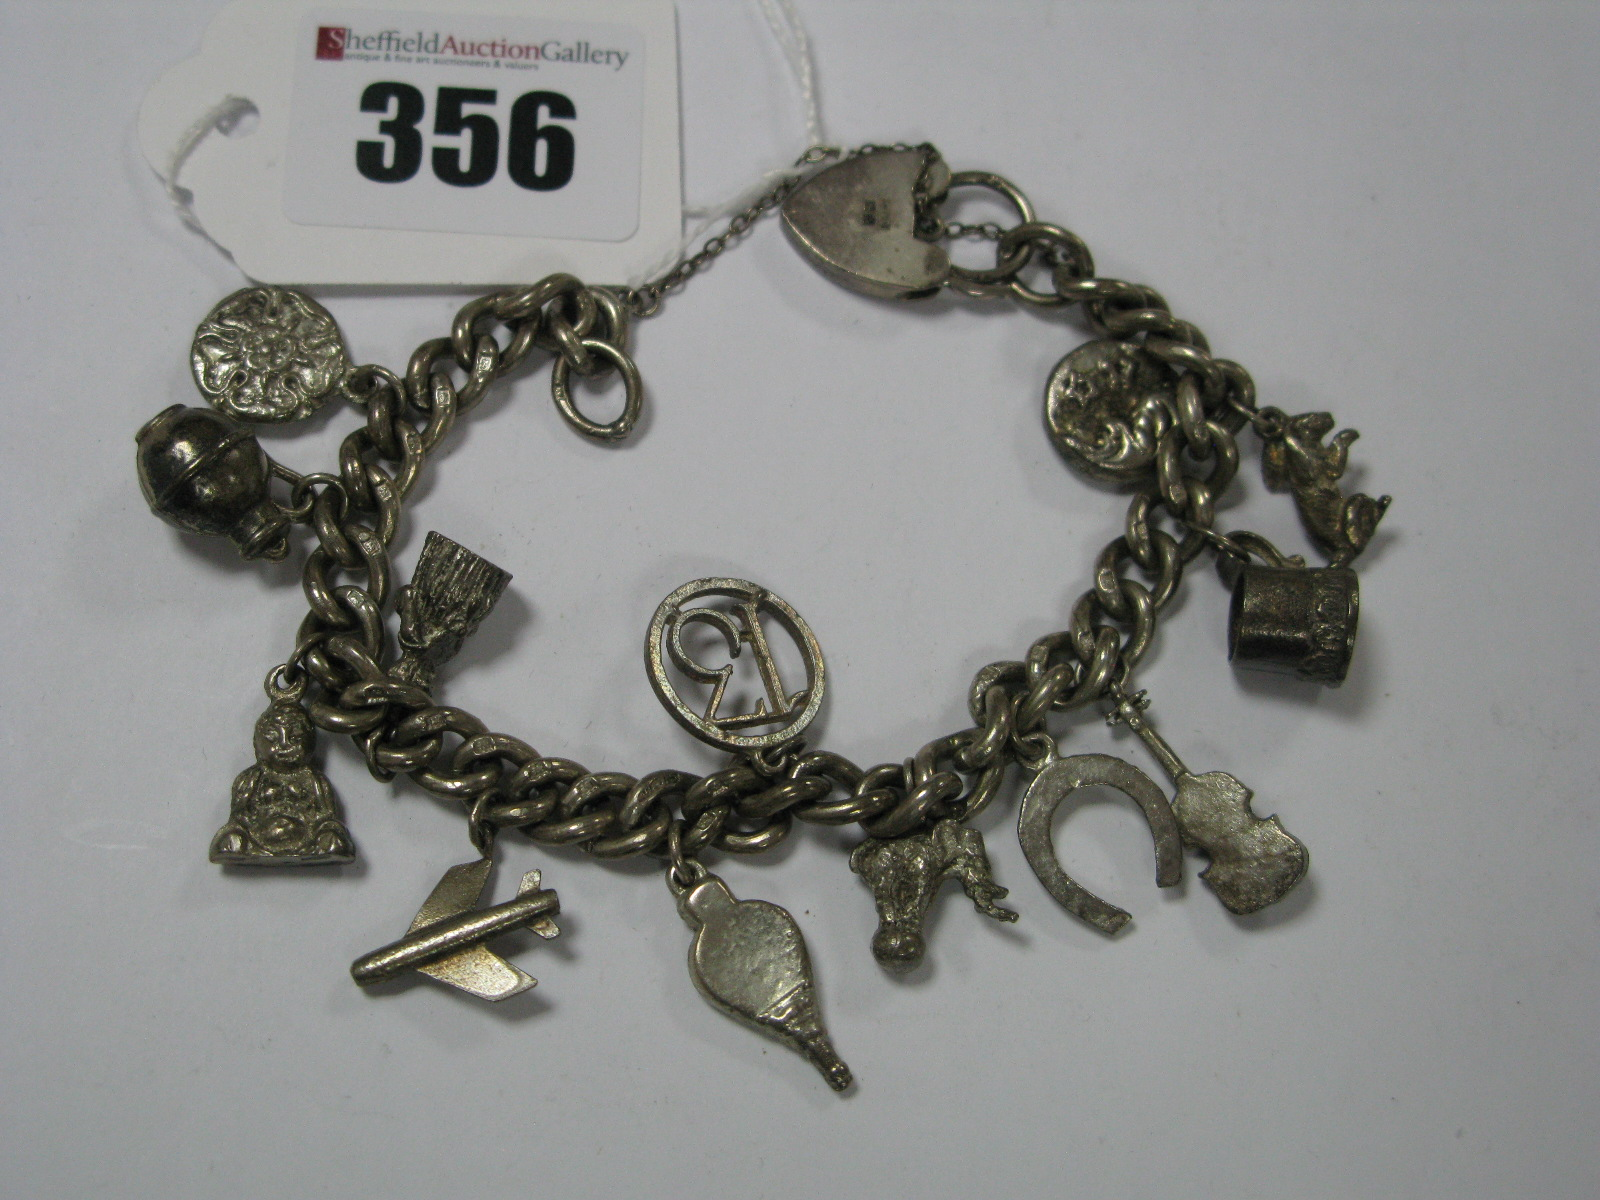 Lot 356 - A Hallmarked Silver Curb Link Bracelet, to heart shape padlock clasp, suspending numerous charm